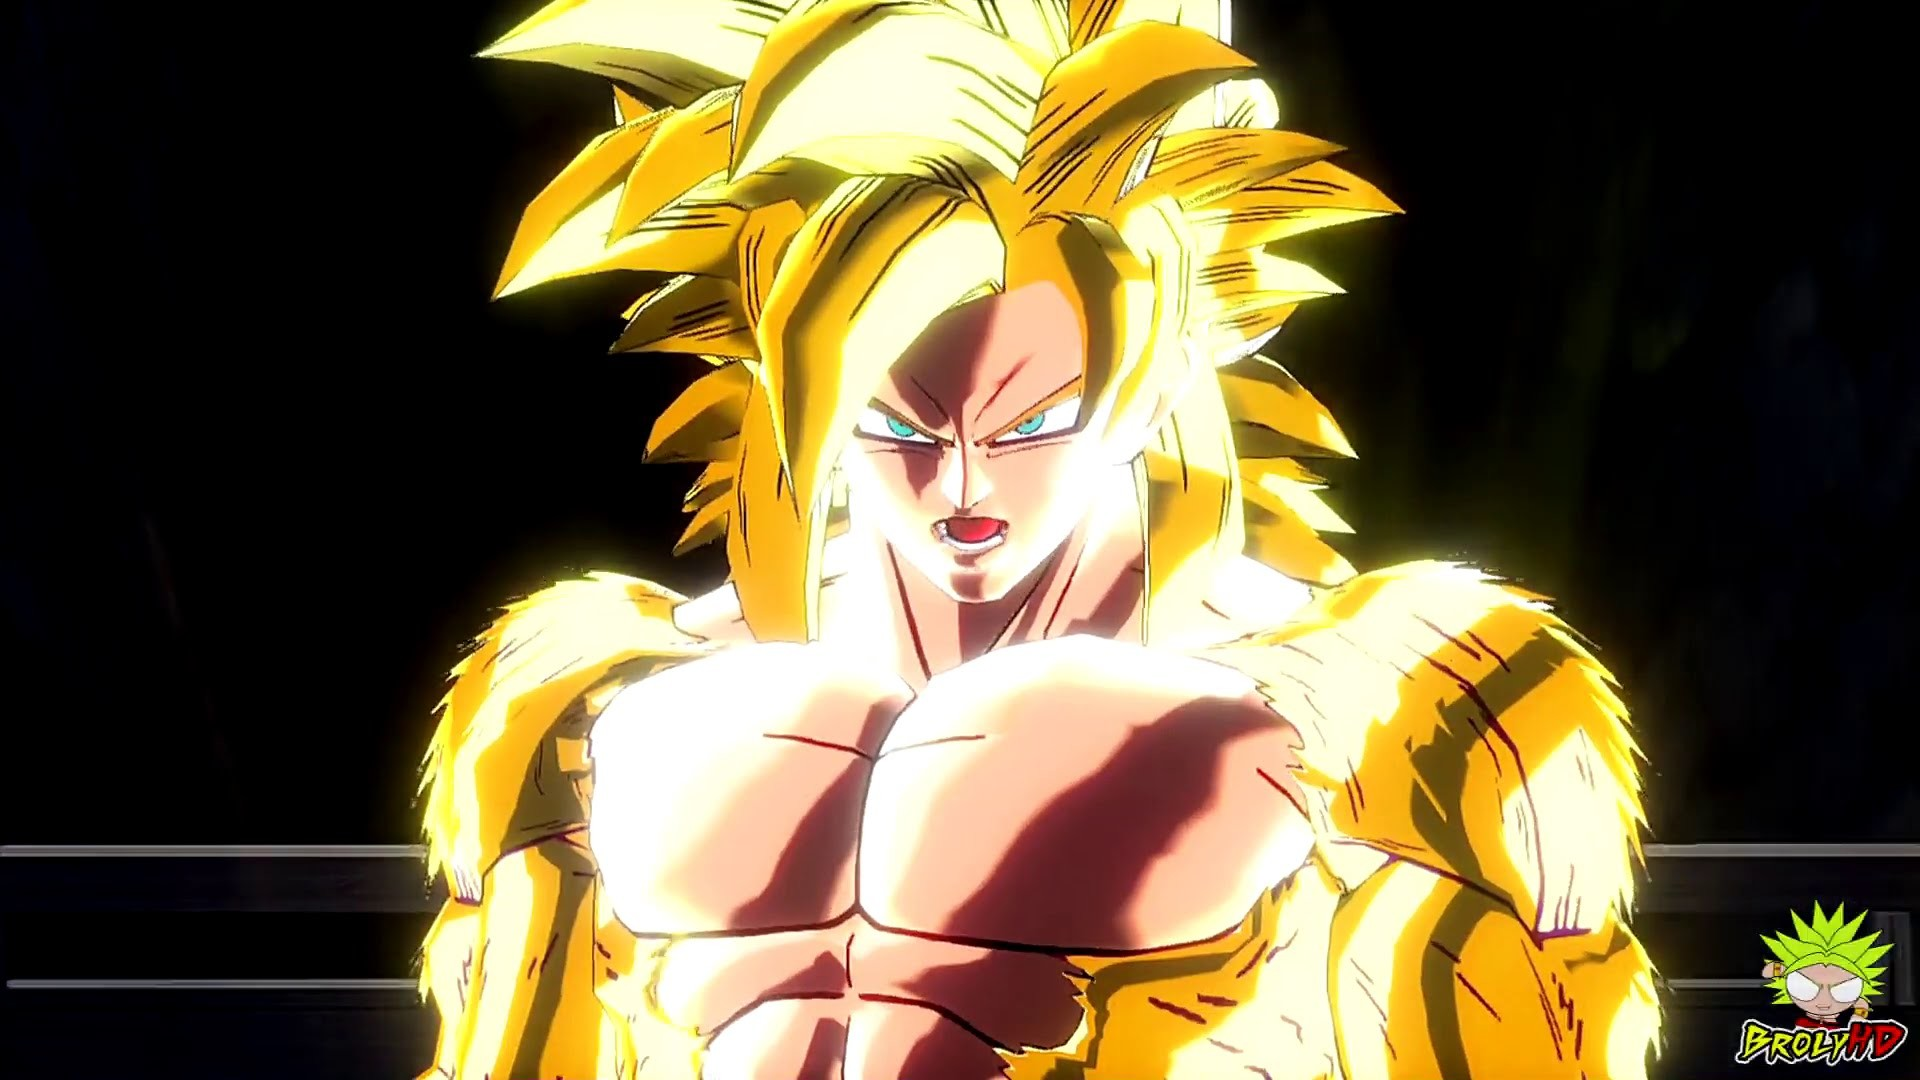 Goku super saiyan 4 wallpaper 66 images - Goku 5 super saiyan ...